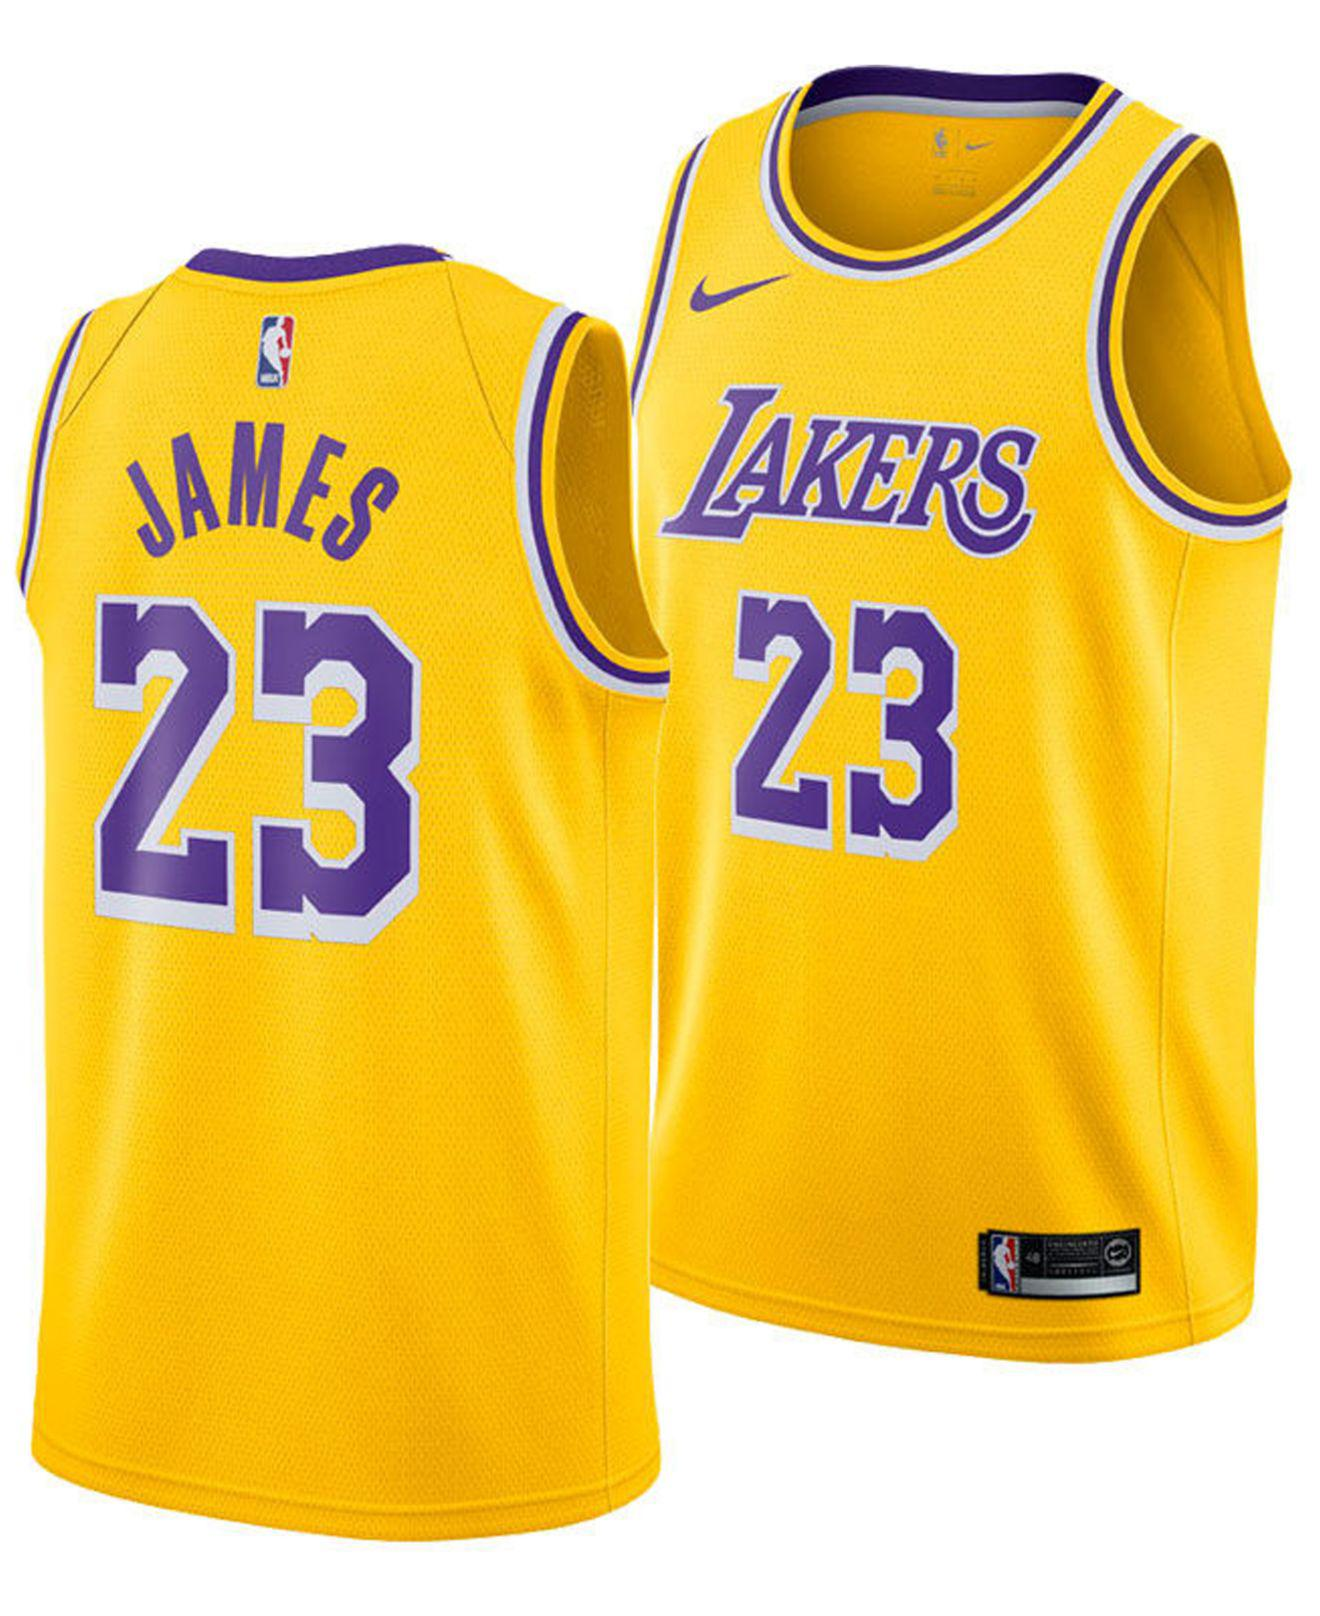 1176e8af126 Nike. Men s Yellow Lebron James Icon Edition Swingman (los Angeles Lakers) Nba  Connected Jersey